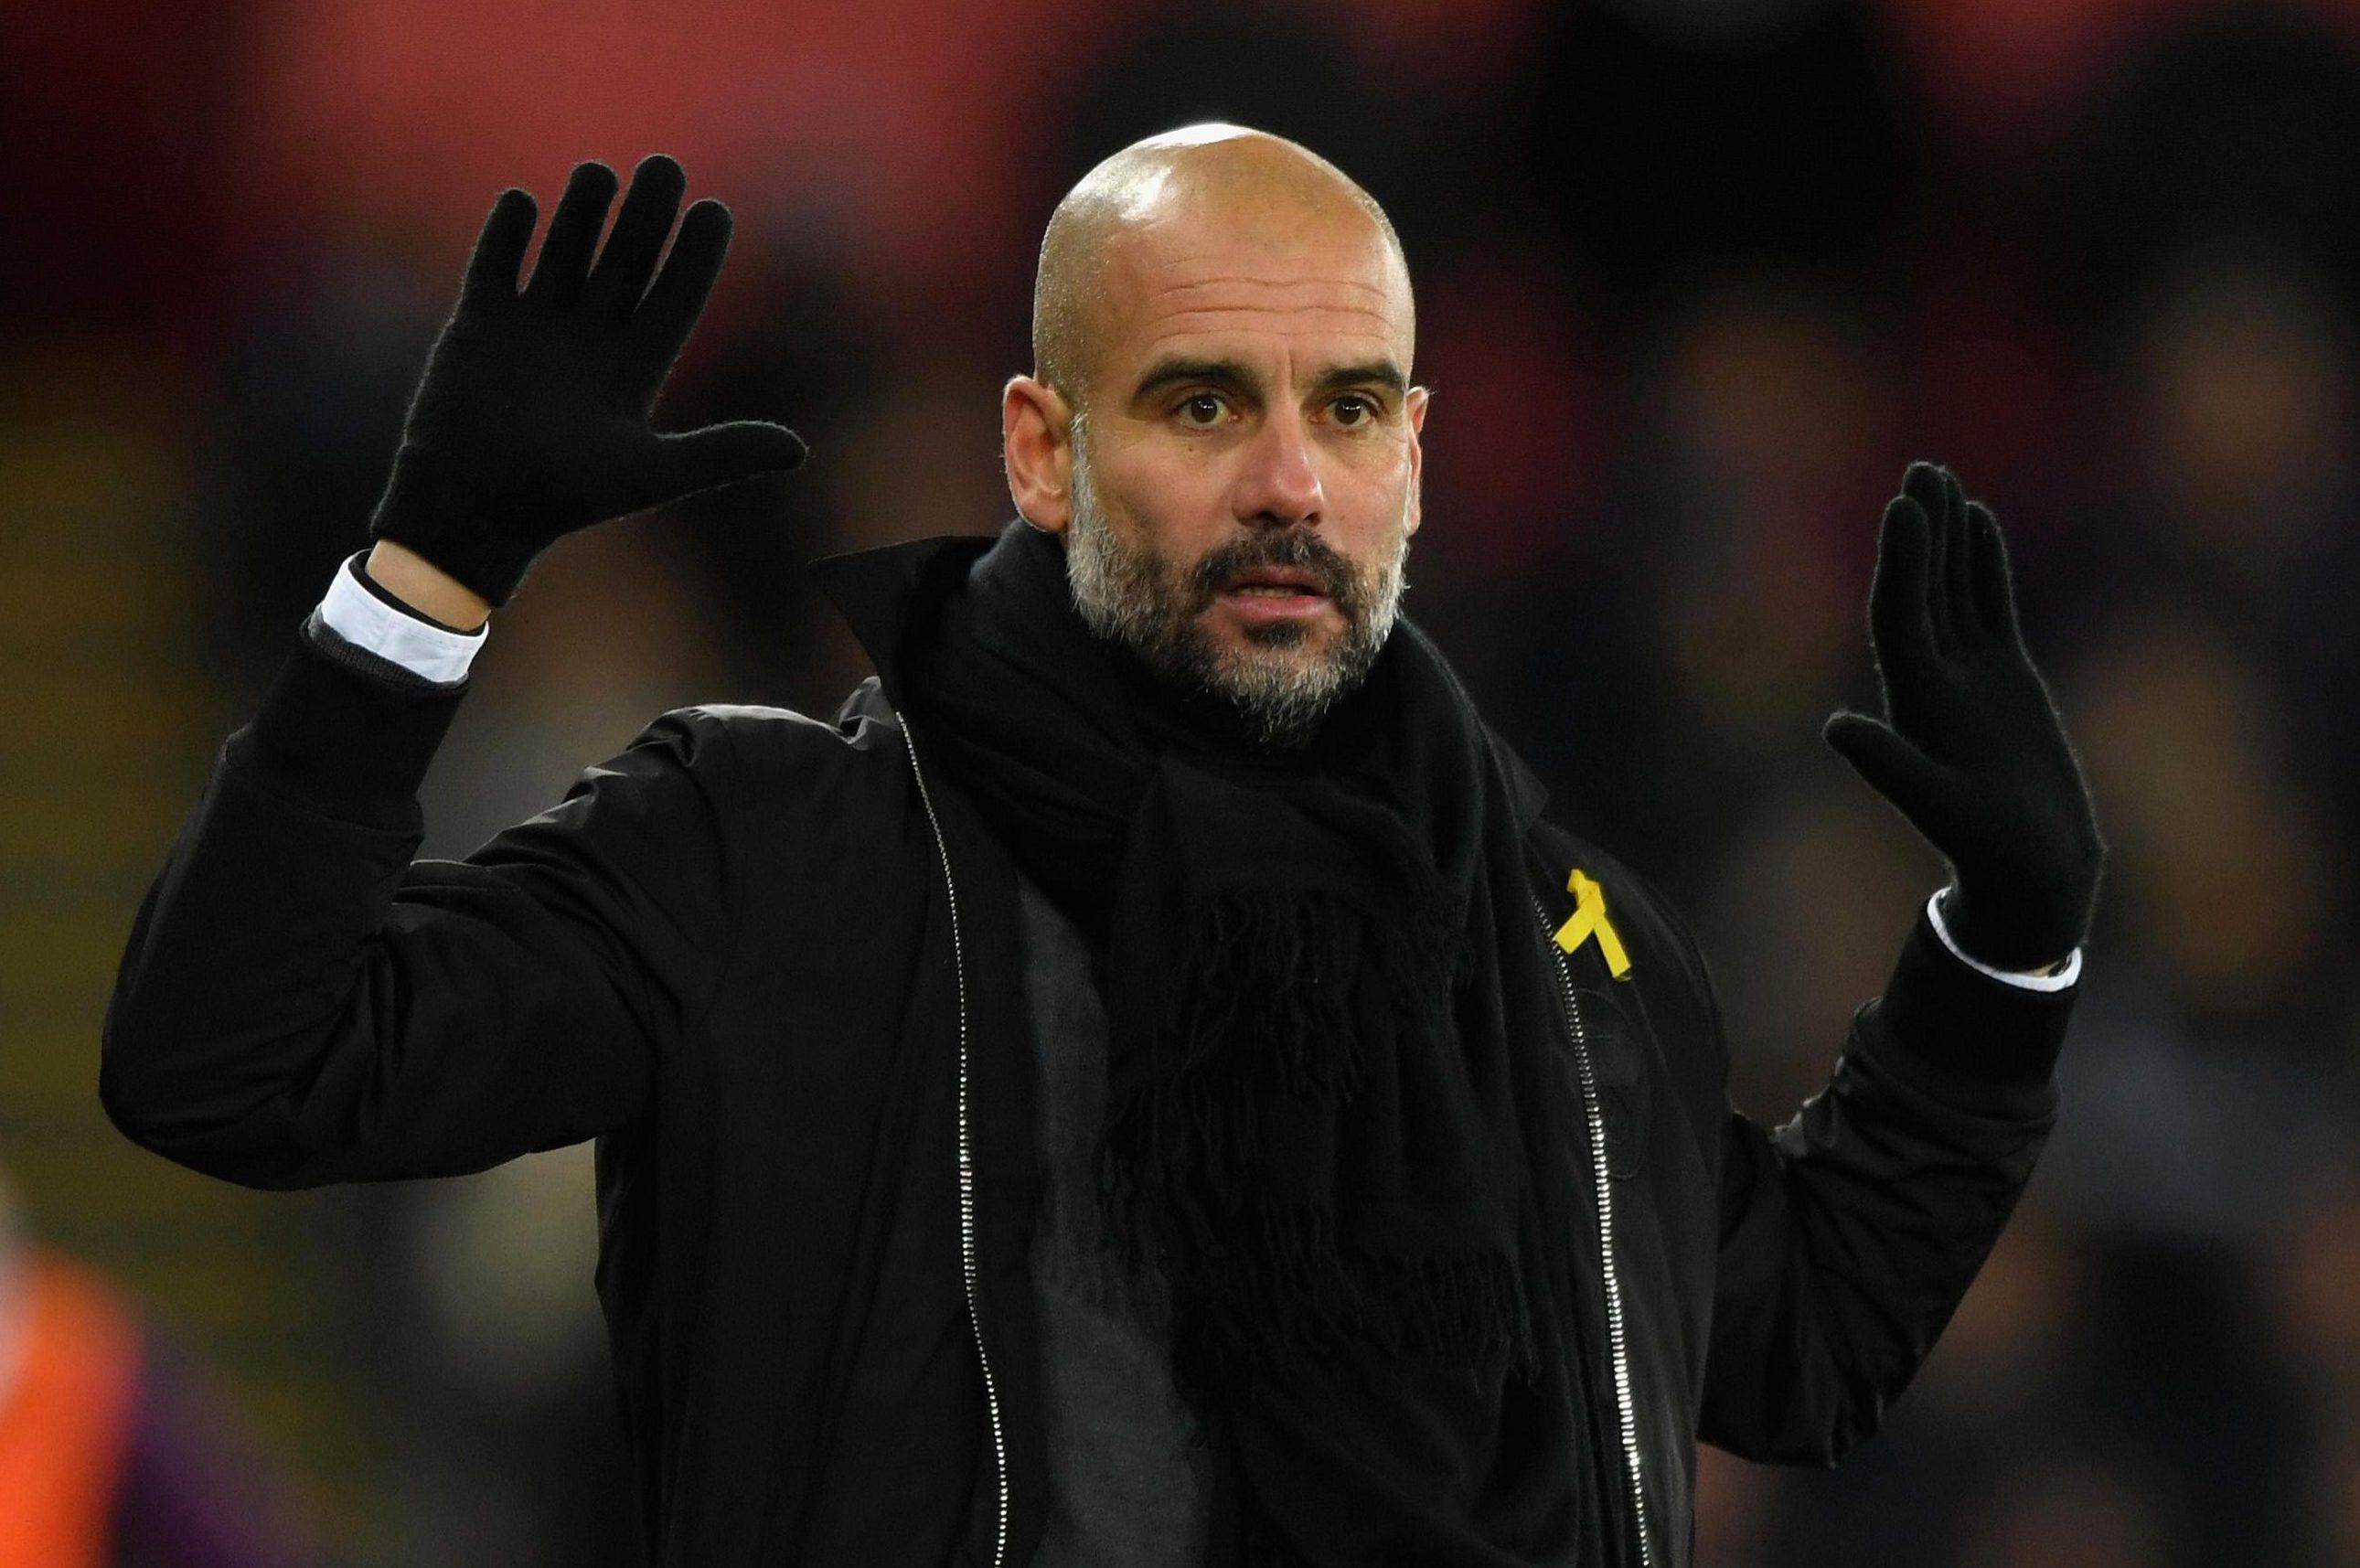 Pep Guardiola is also believed to be weighing-up a move for the centre-half